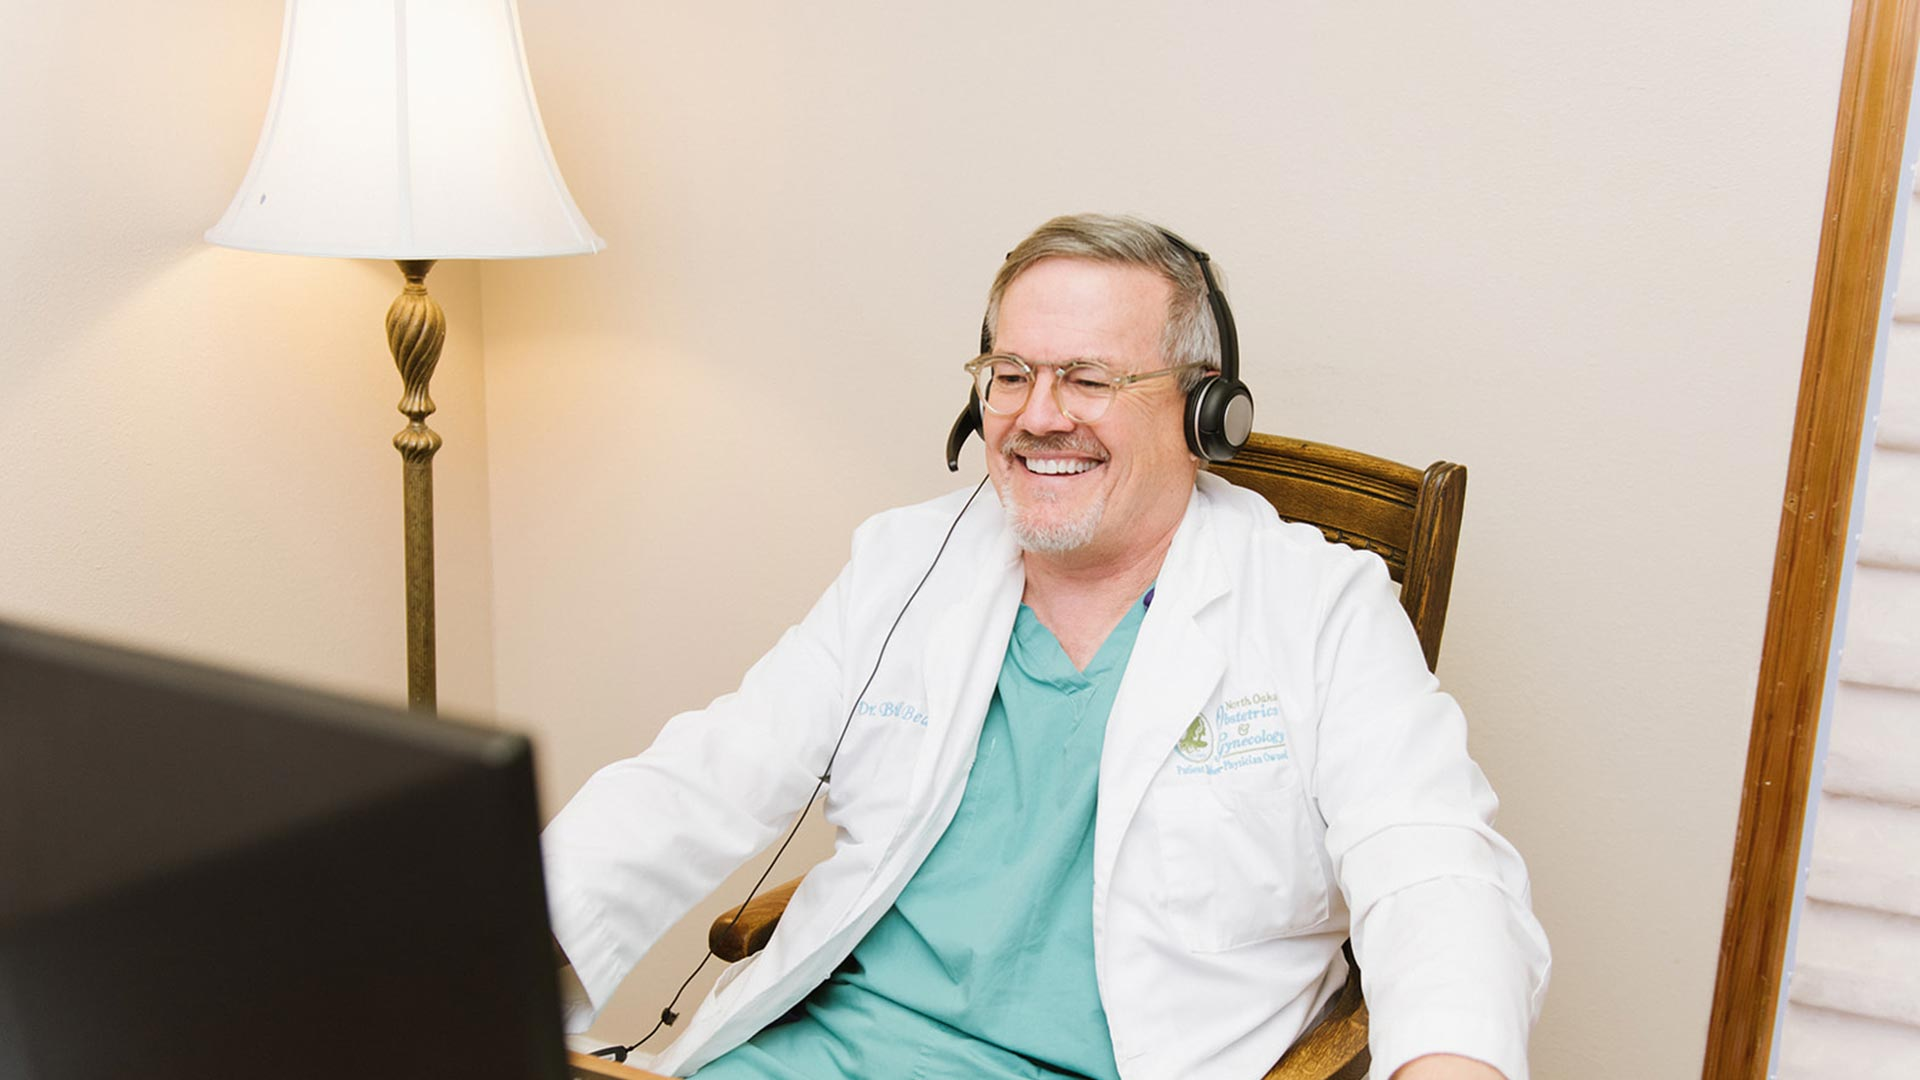 Dr. Beacham having a remote meeting at North Oaks OBGYN with a patient.